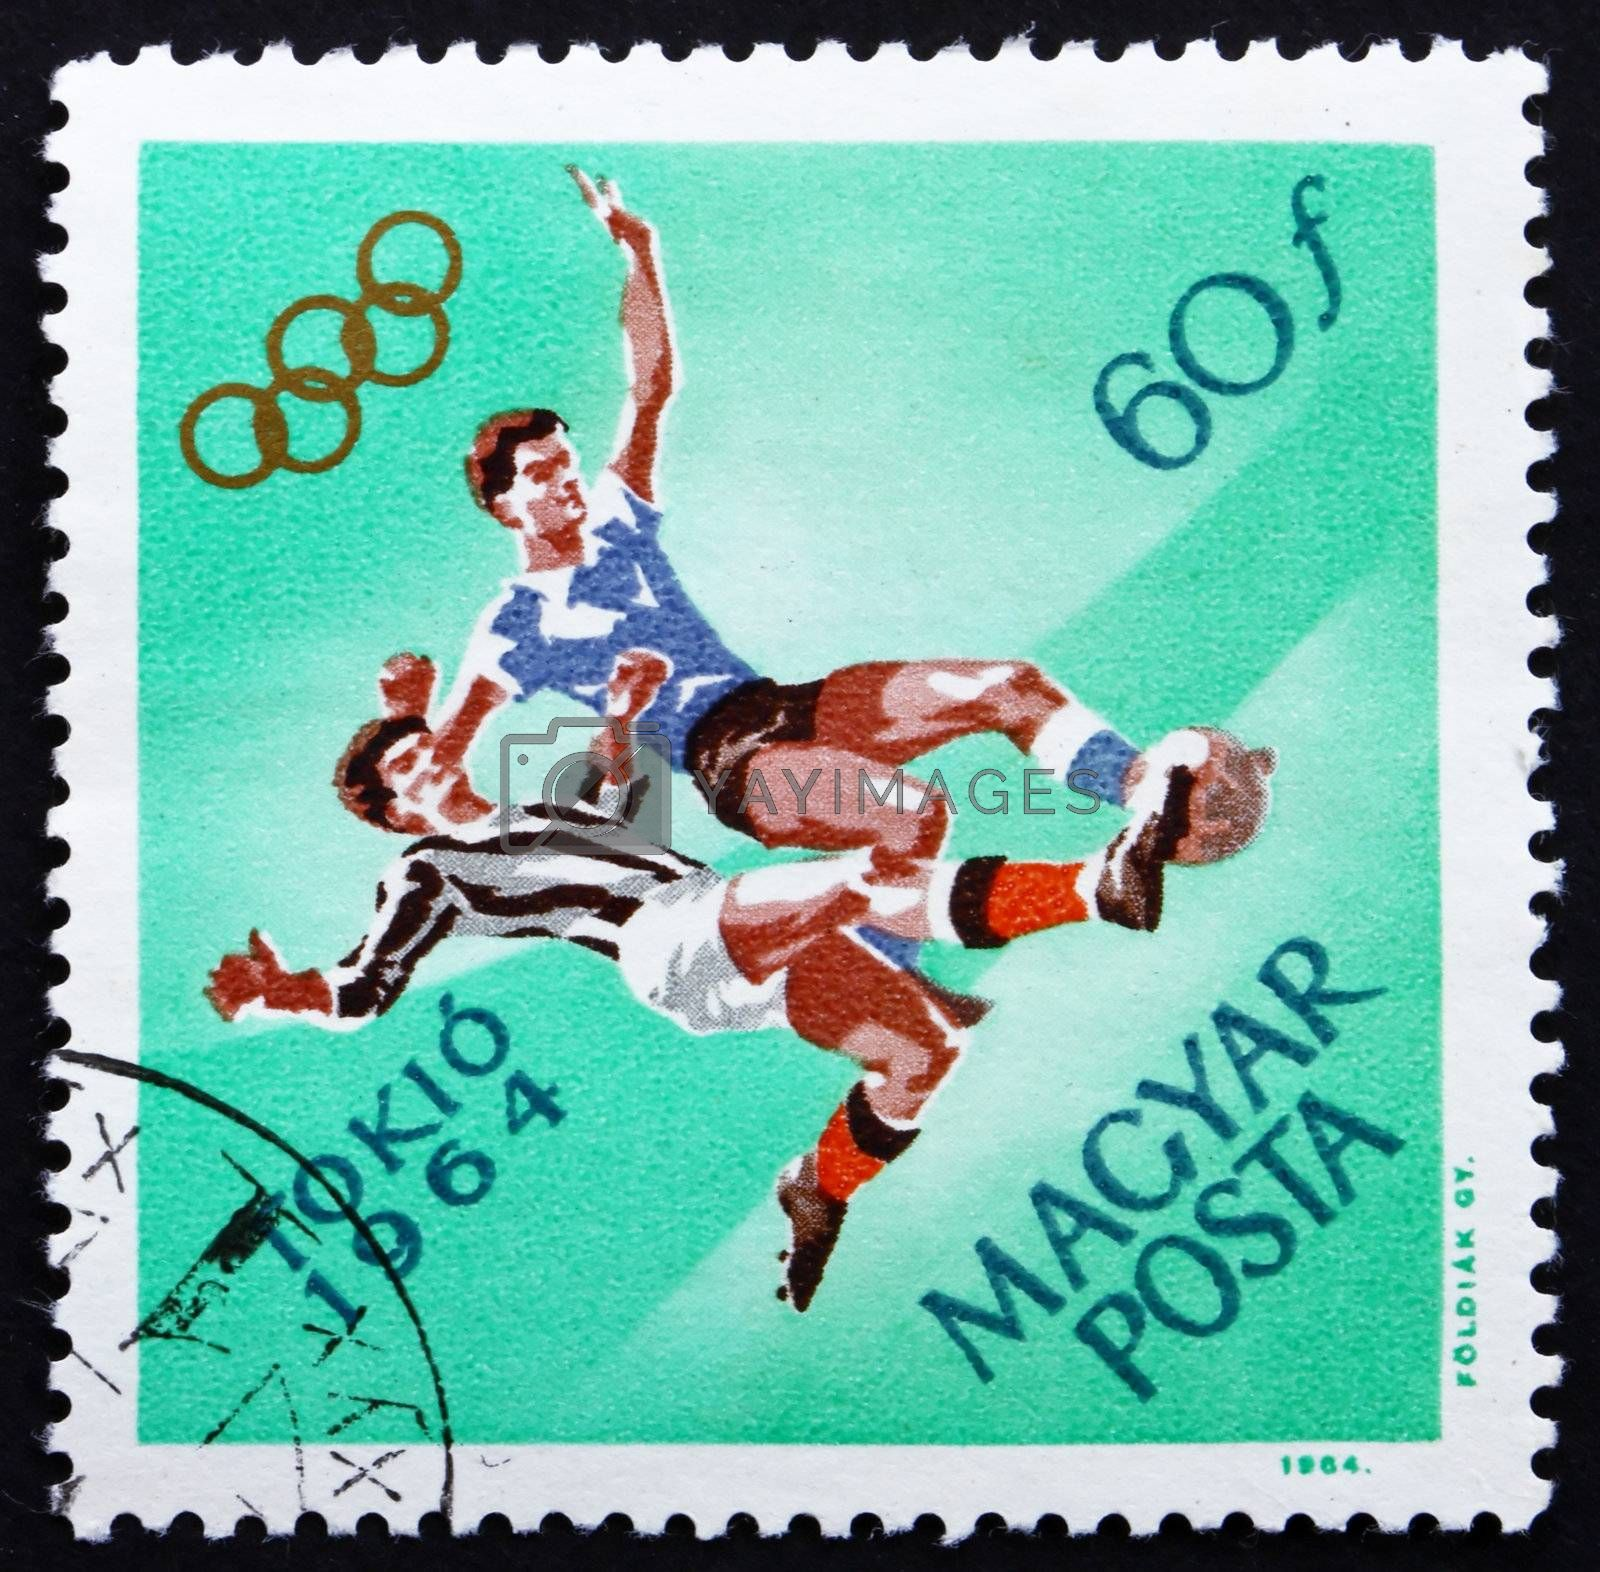 HUNGARY - CIRCA 1964: a stamp printed in the Hungary shows Soccer, Football, Summer Olympic sports, Tokyo 64, circa 1964